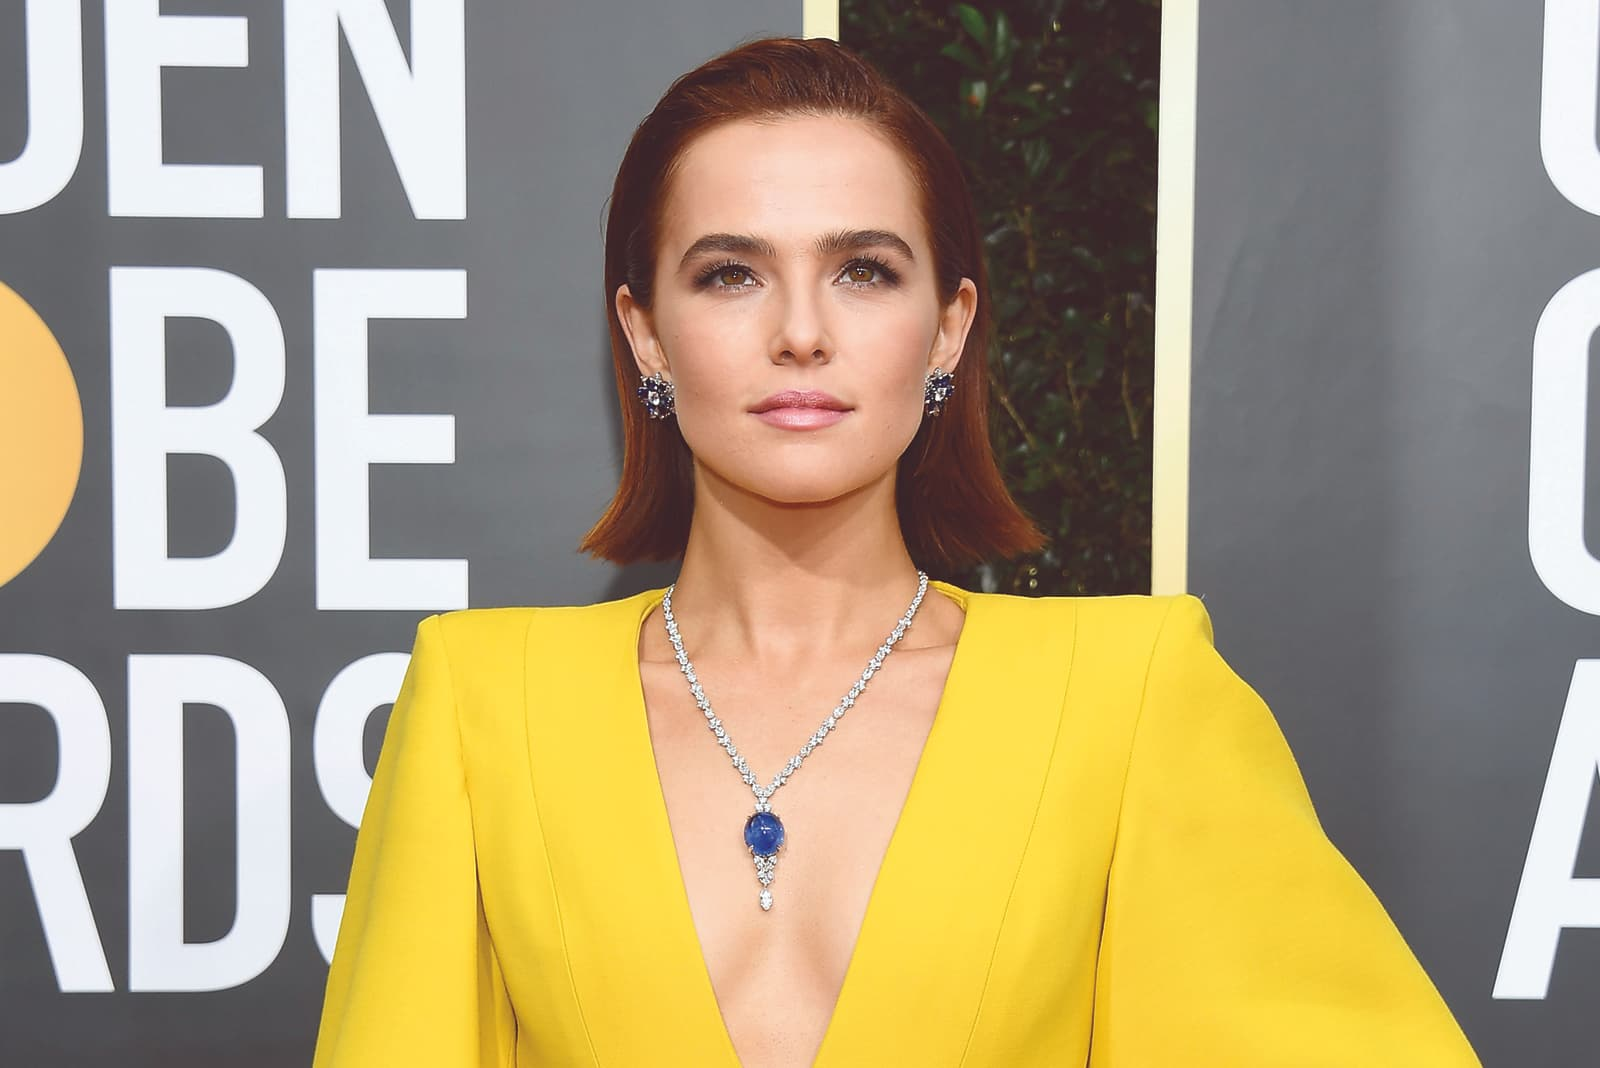 Zoey Deutch wearing Harry Winston 58.69ct cabochon sapphire and 22.93ct diamond necklace, and earrings with sapphires and diamonds